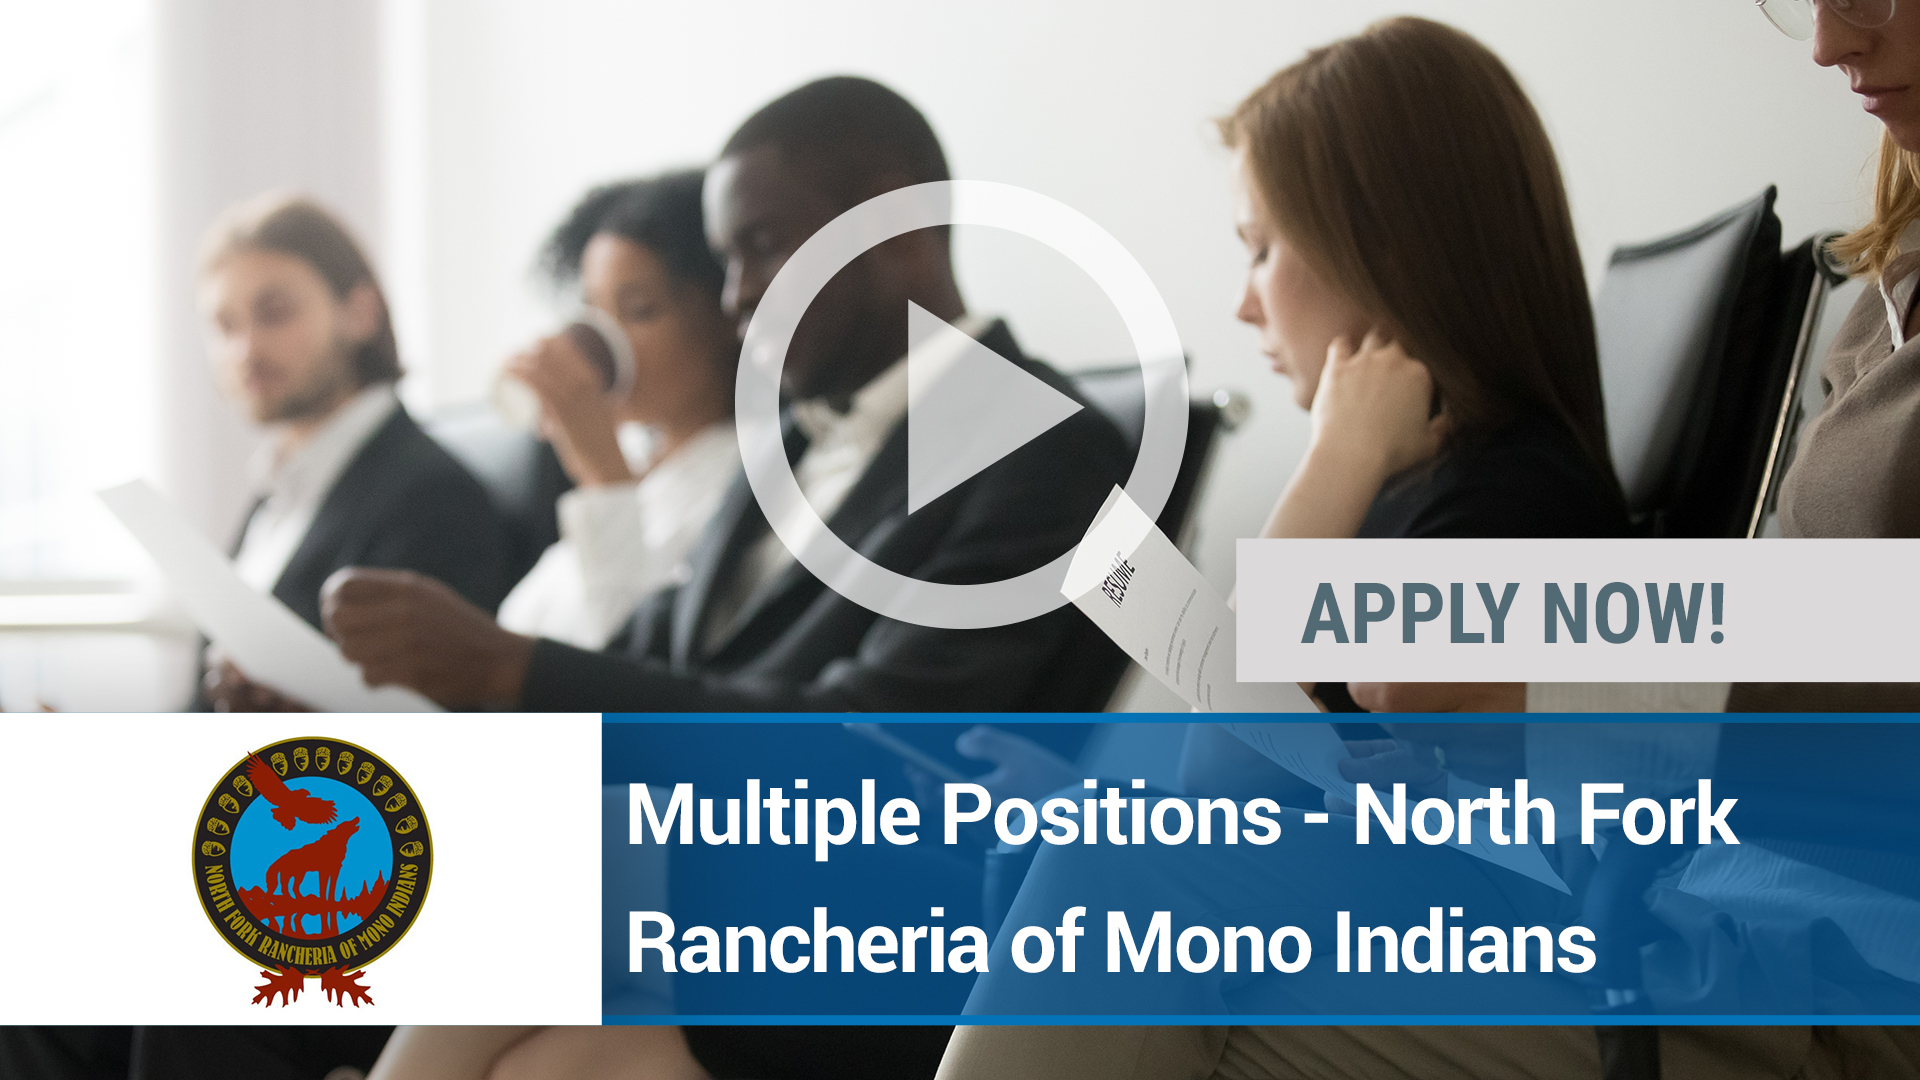 Watch our careers video for available job opening Multiple Positions - North Fork Rancheria of Mono in NORTH FORK, CA